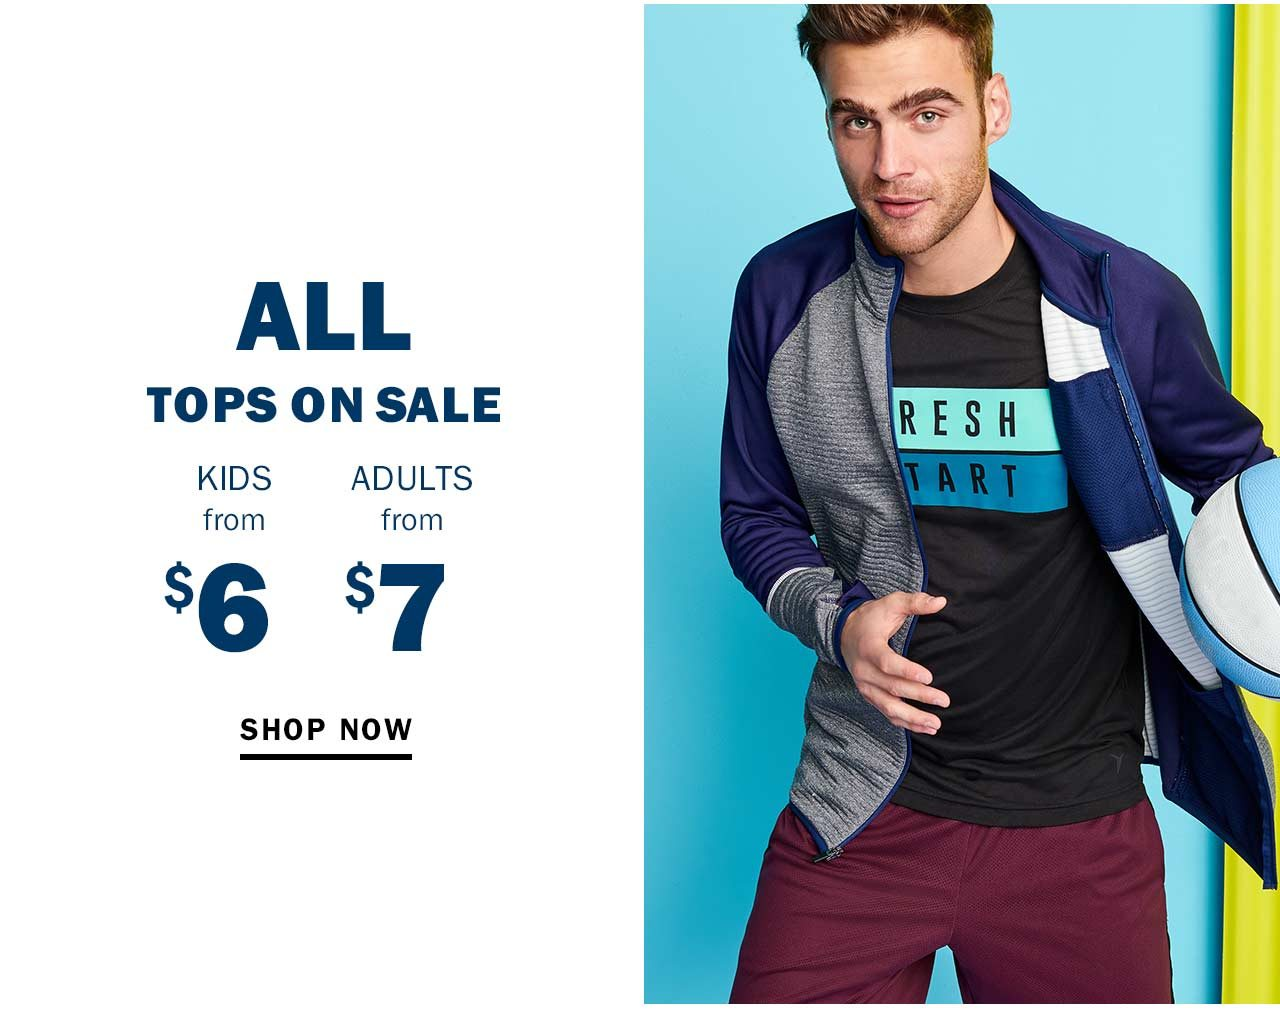 ALL TOPS ON SALE